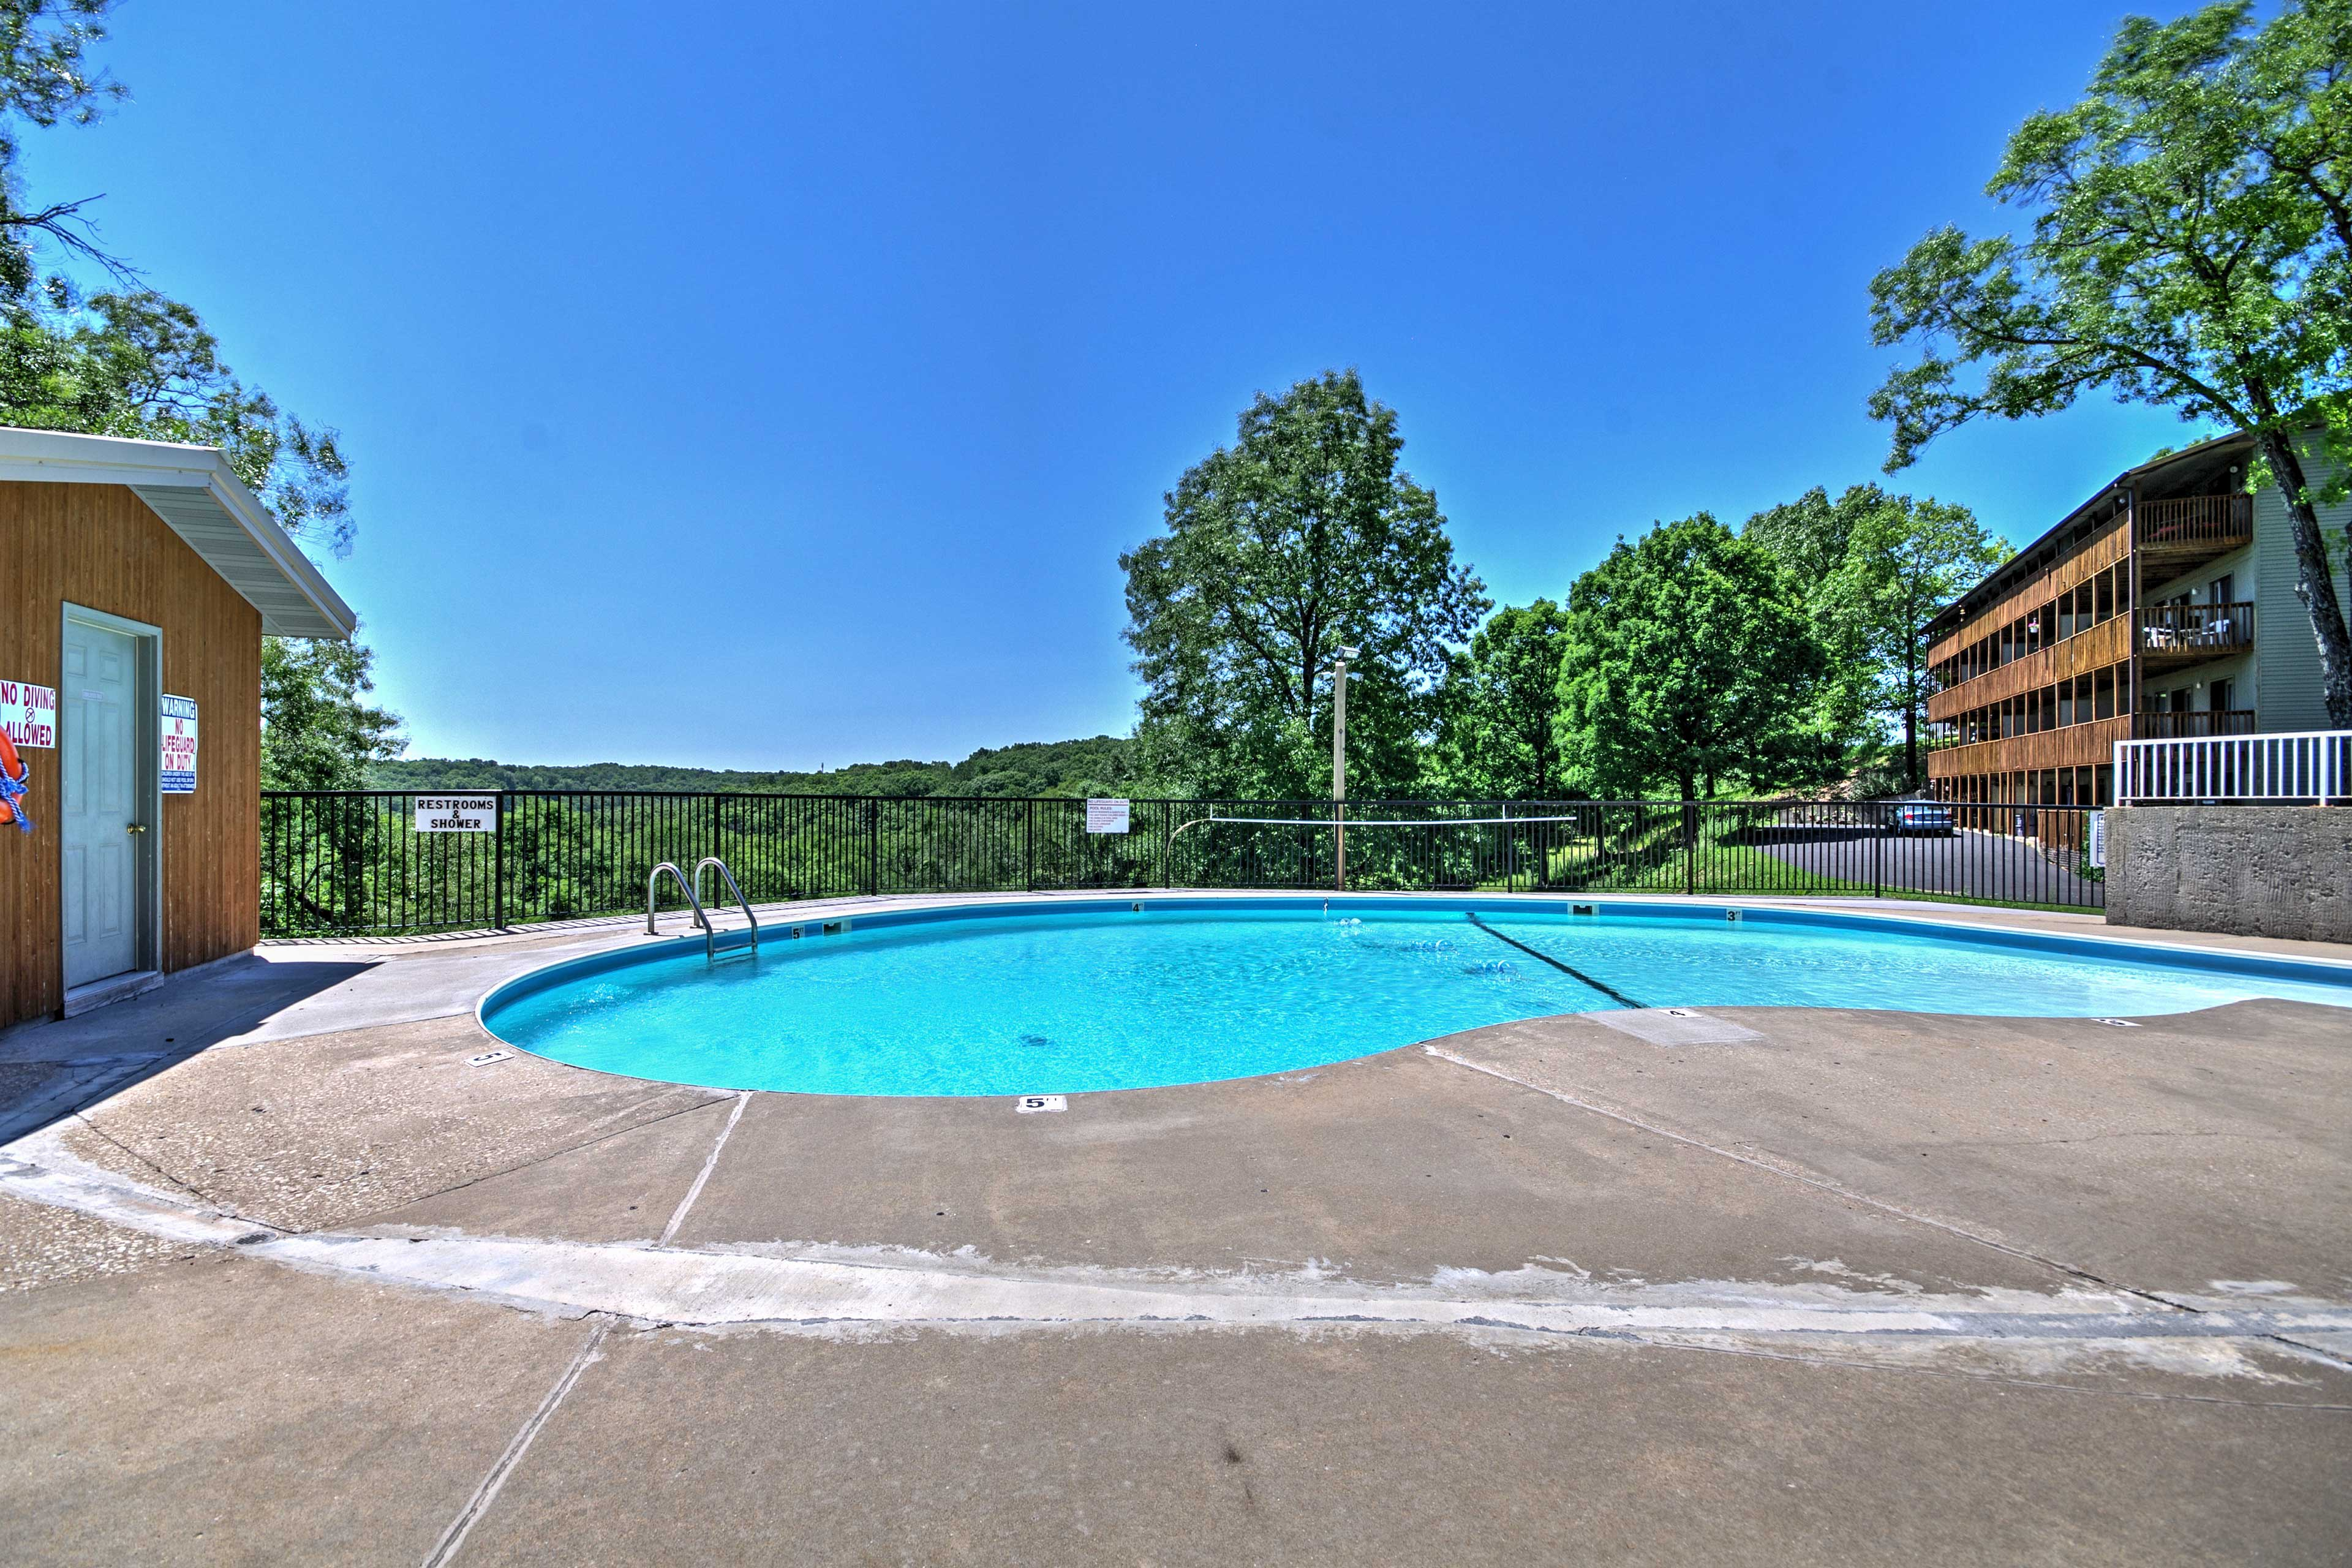 You'll find 2 pools and a playground within the community!